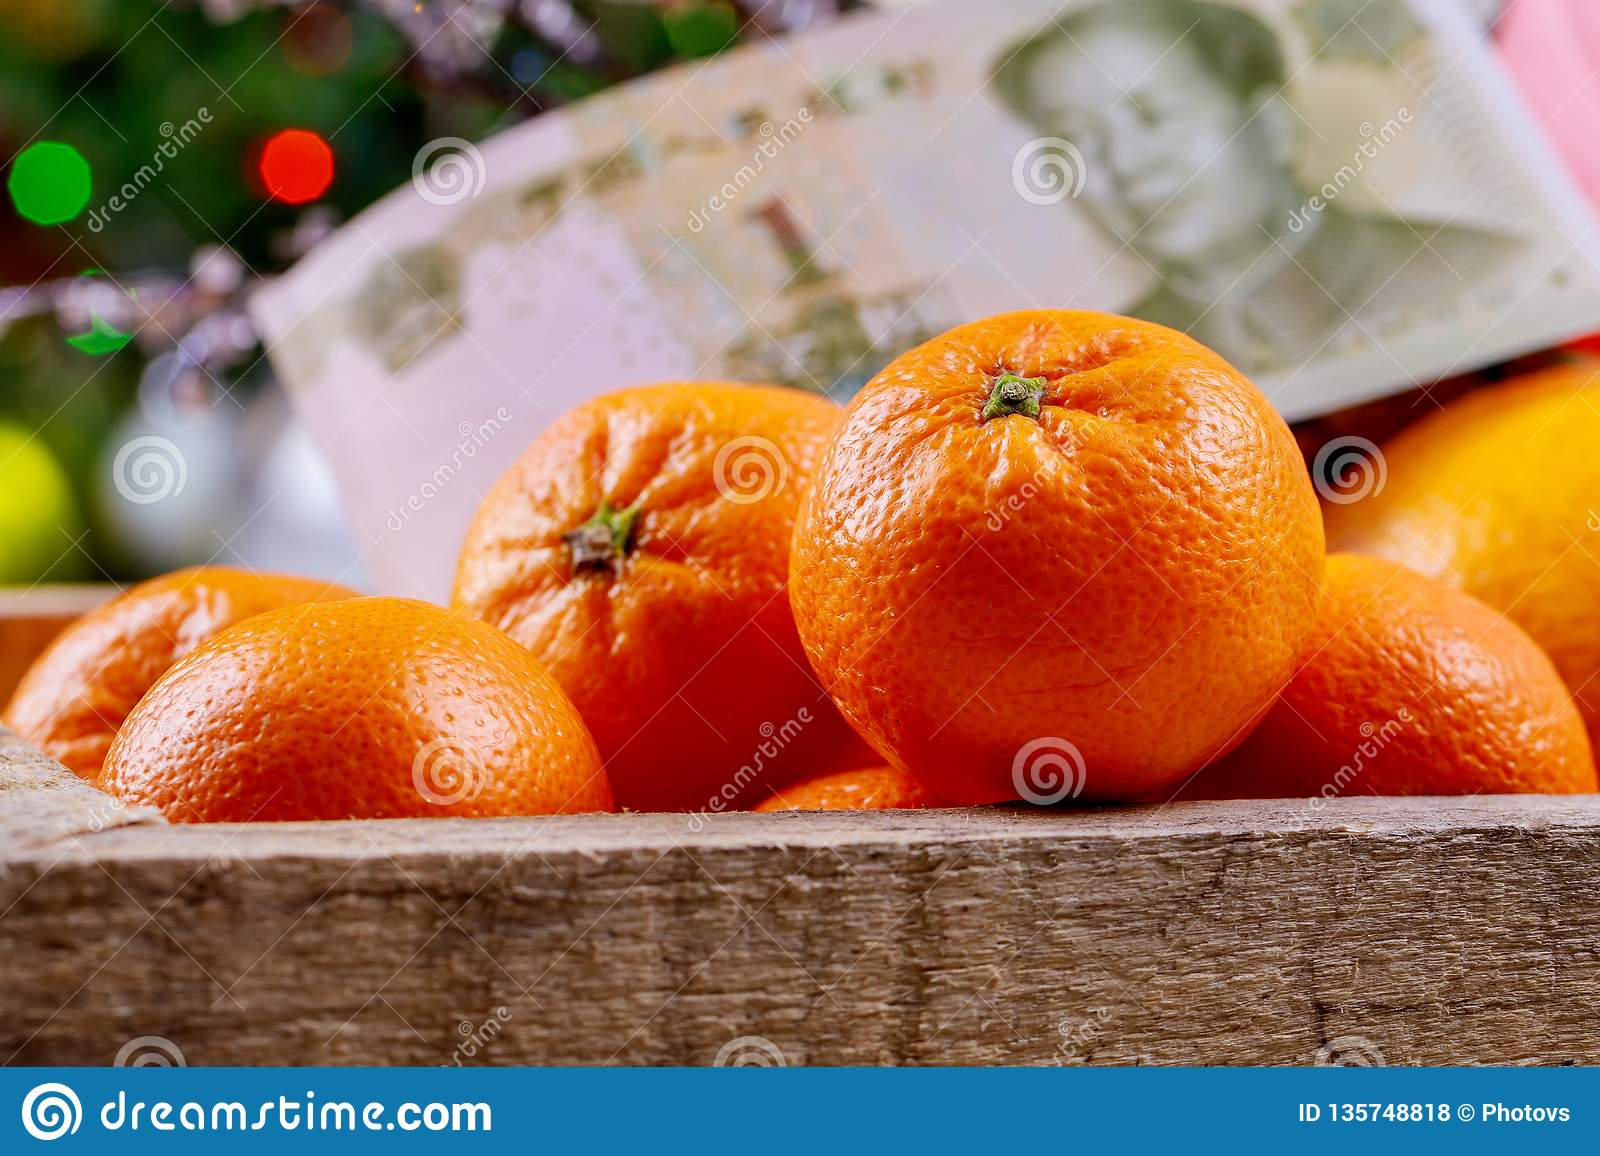 Chinese new year festival decorations orange wood basket Chinese yuan banknotes